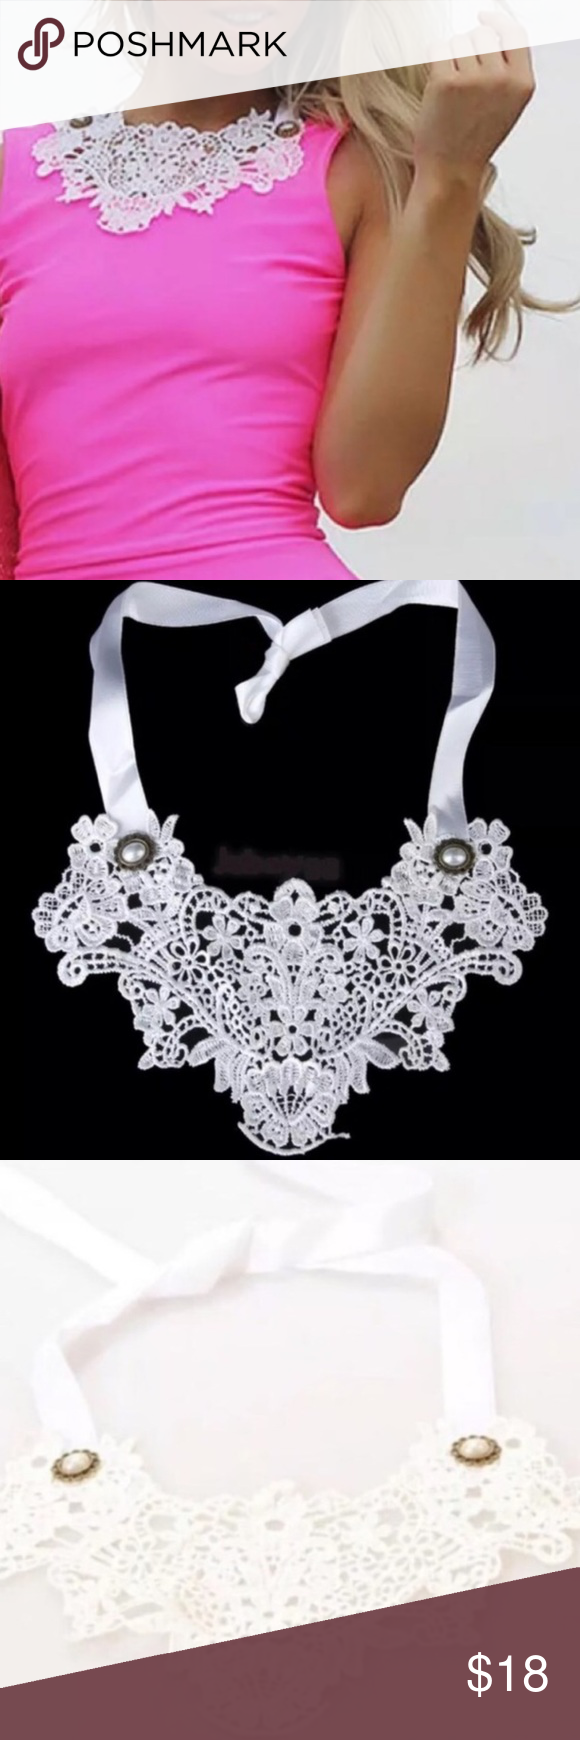 White Lace BIB NECKLACE statement choker collar New! Beautiful white lace bib necklace statement piece. Add flair and interest to your neckline...! Ties gently with a ribbon. Charming accent - give the illusion that it's part of your top or display as a stand alone necklace..! (D1) Nasty Gal Jewelry Necklaces